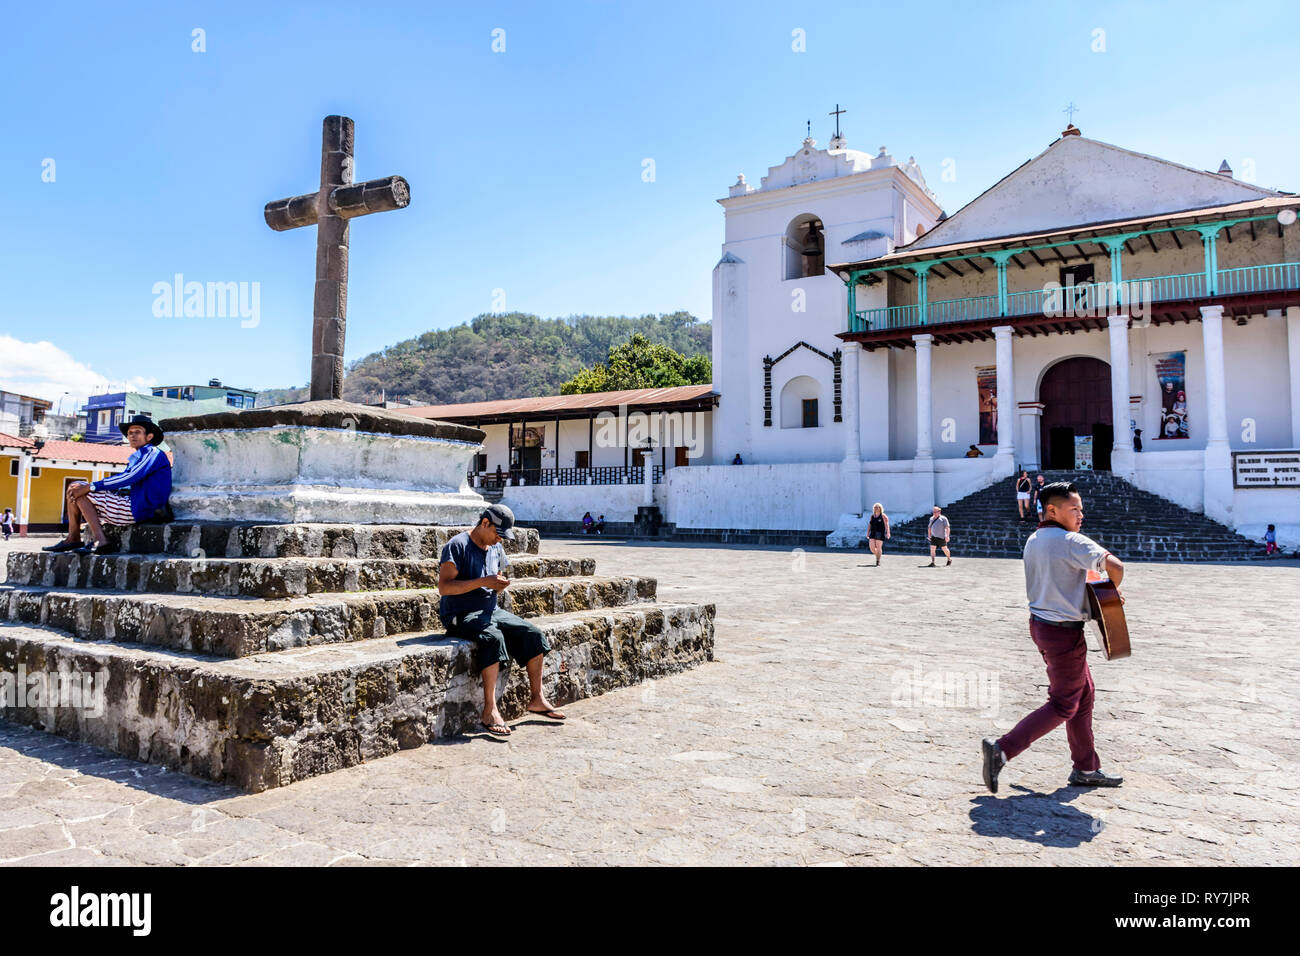 Santiago Atitlan, Lake Atitlan, Guatemala - March 8, 2019: Catholic church & plaza in lakeside town in Guatemalan highlands. Stock Photo